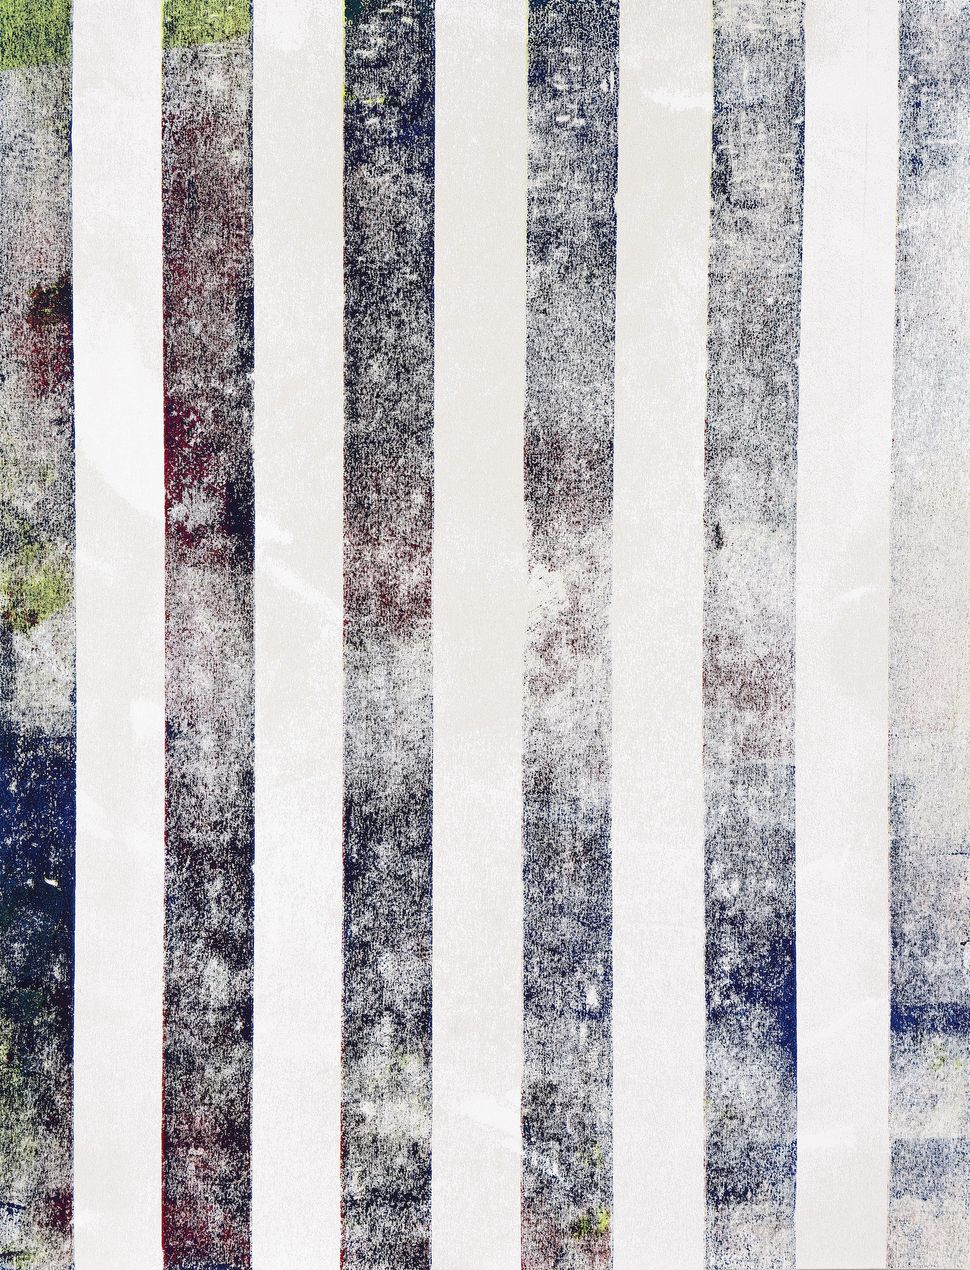 ISRAEL LUND (b.1980), Untitled (47), 2013 2013'on the overlap acrylic on canvas 44by34inches